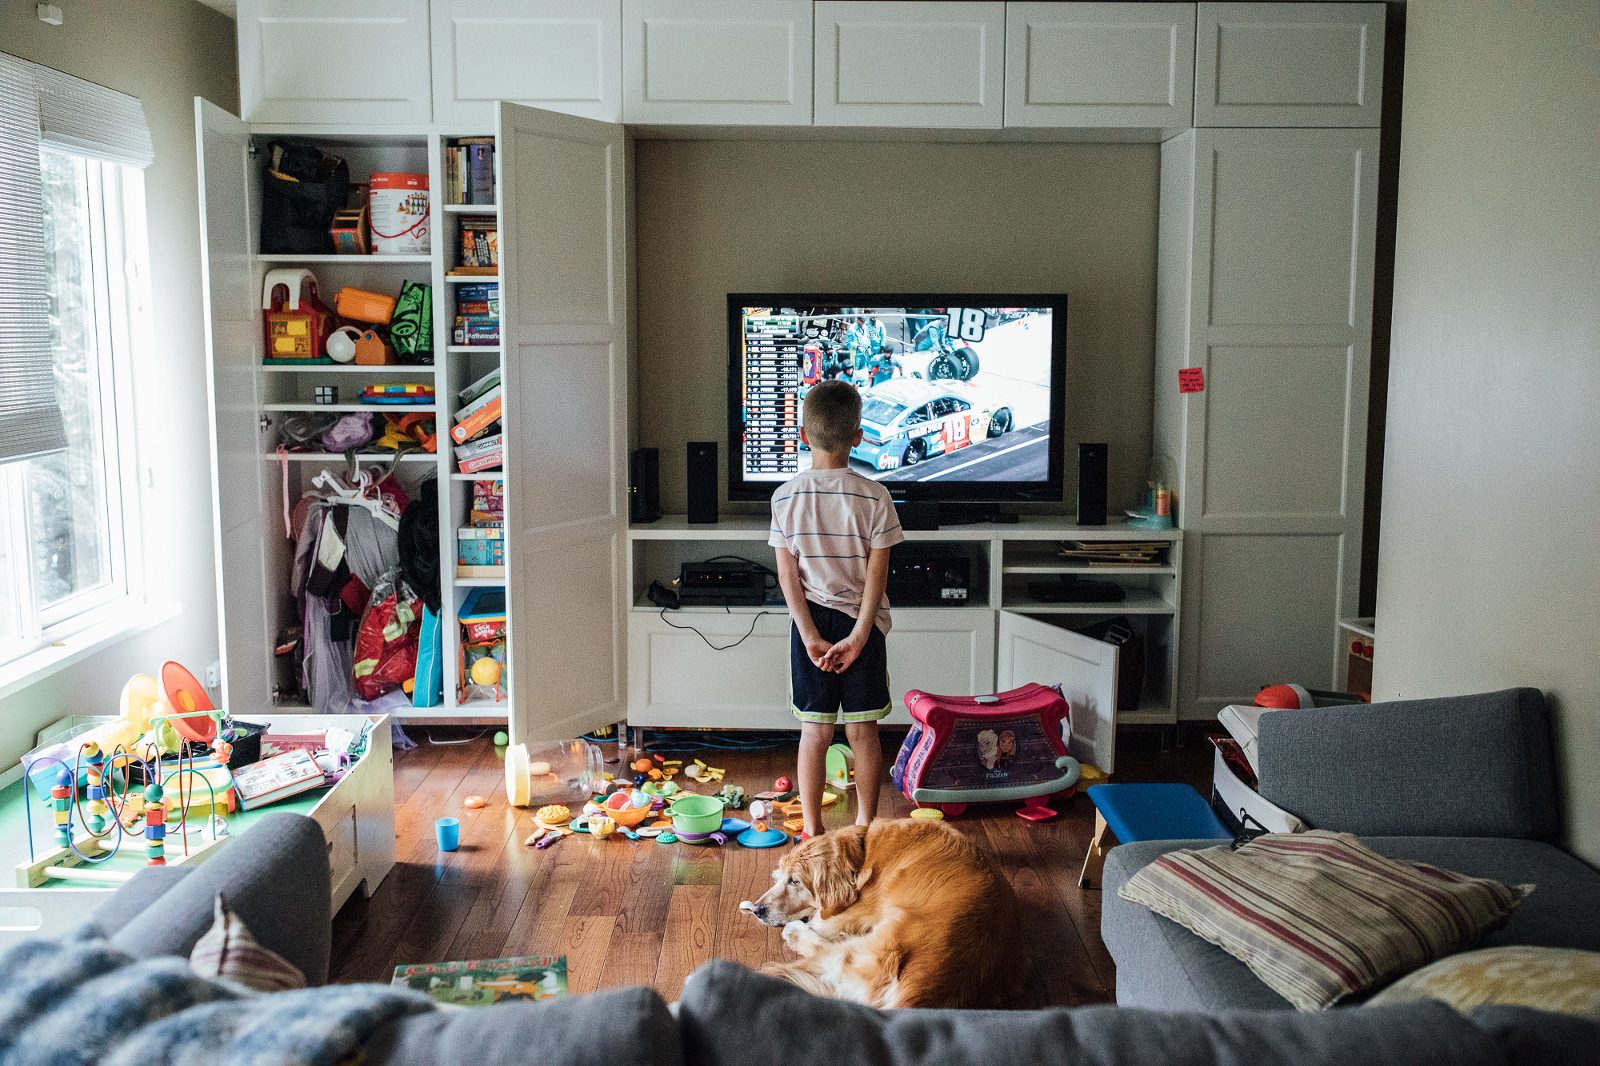 boy watches nascar race on tv in messy playroom